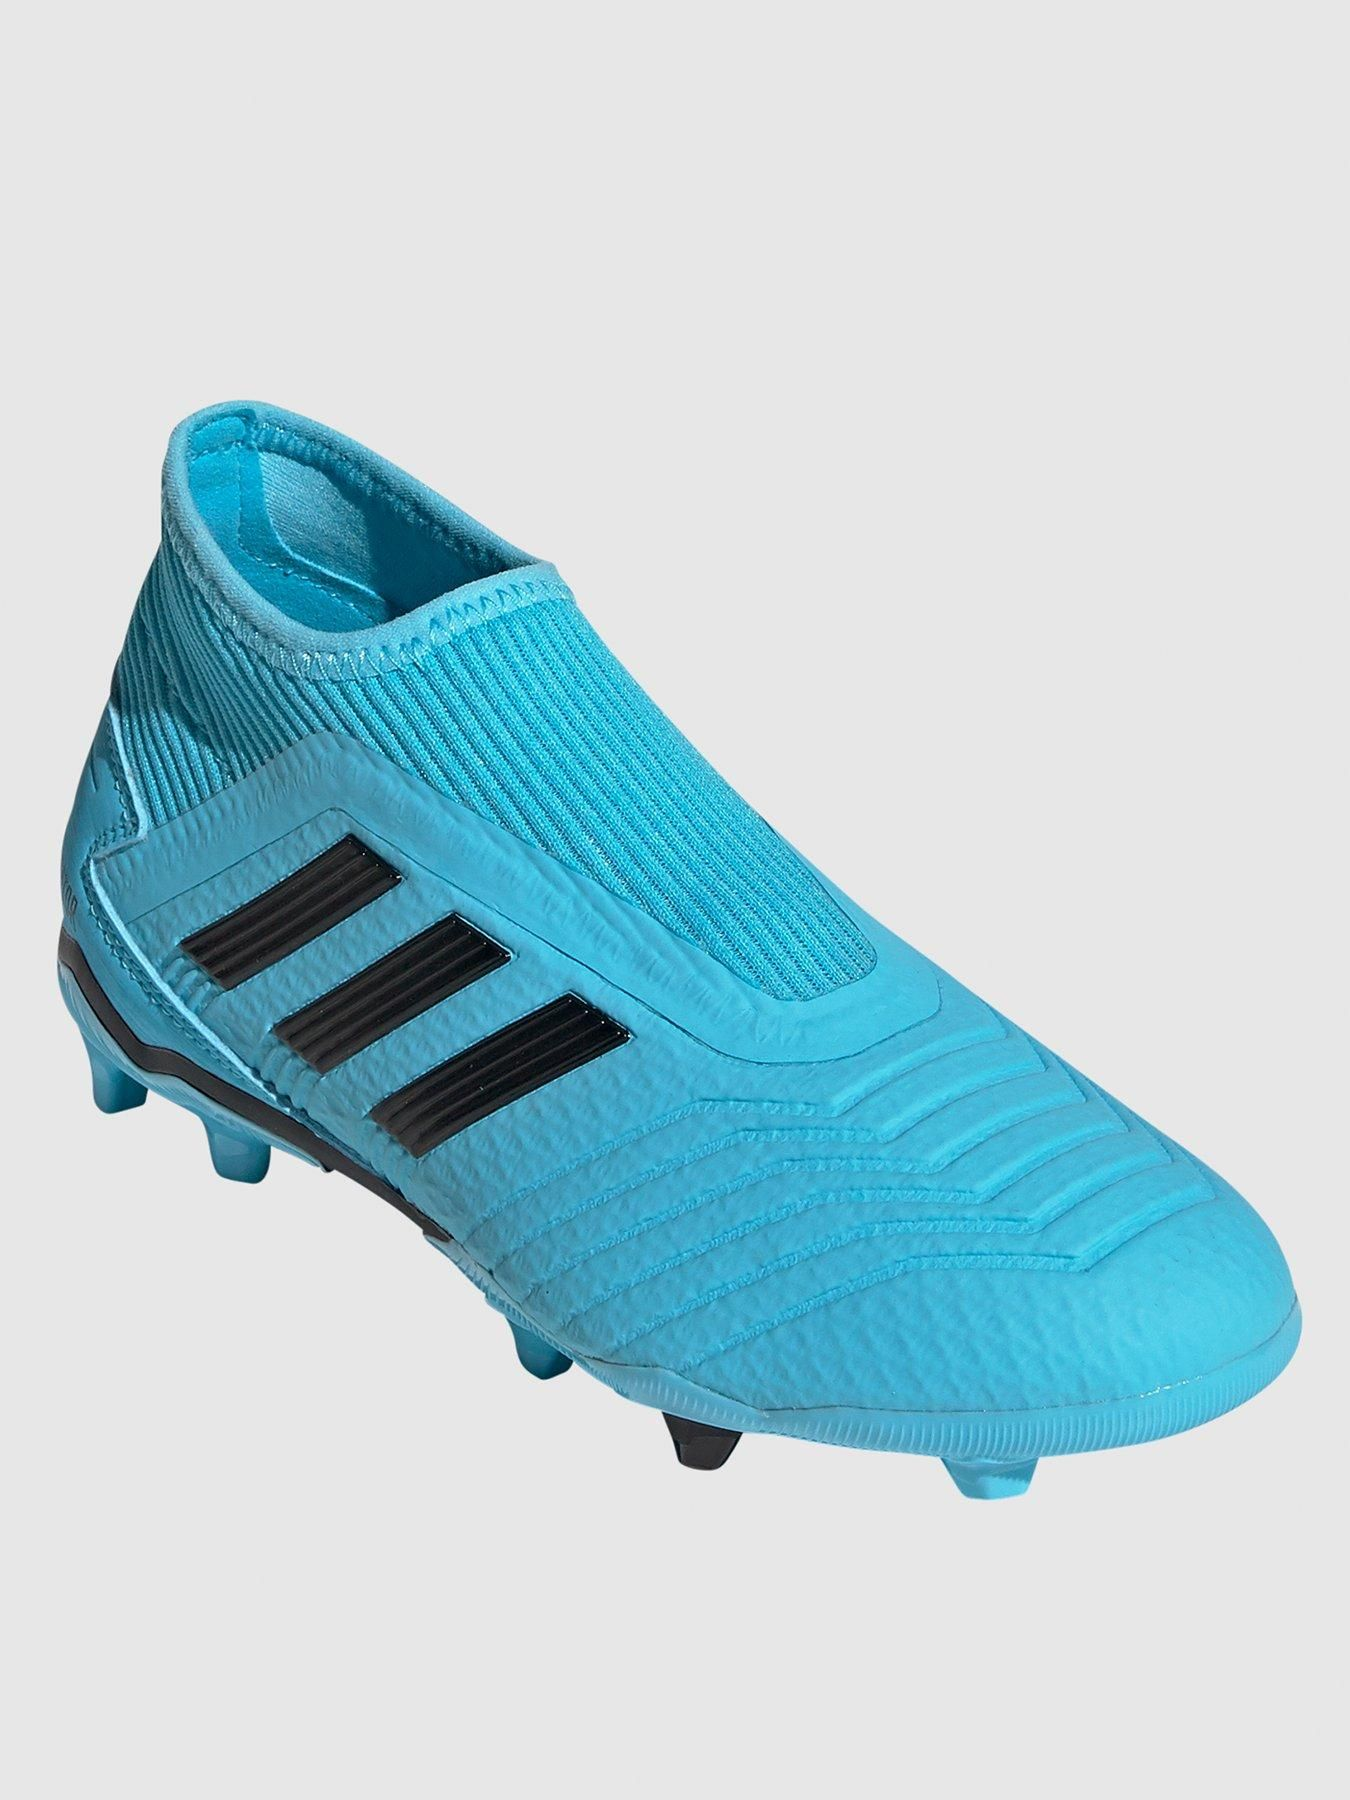 Adidas Junior Predator Laceless 19 3 Firm Ground Football Boot Football Shoes Sport Shoes Men Laceless